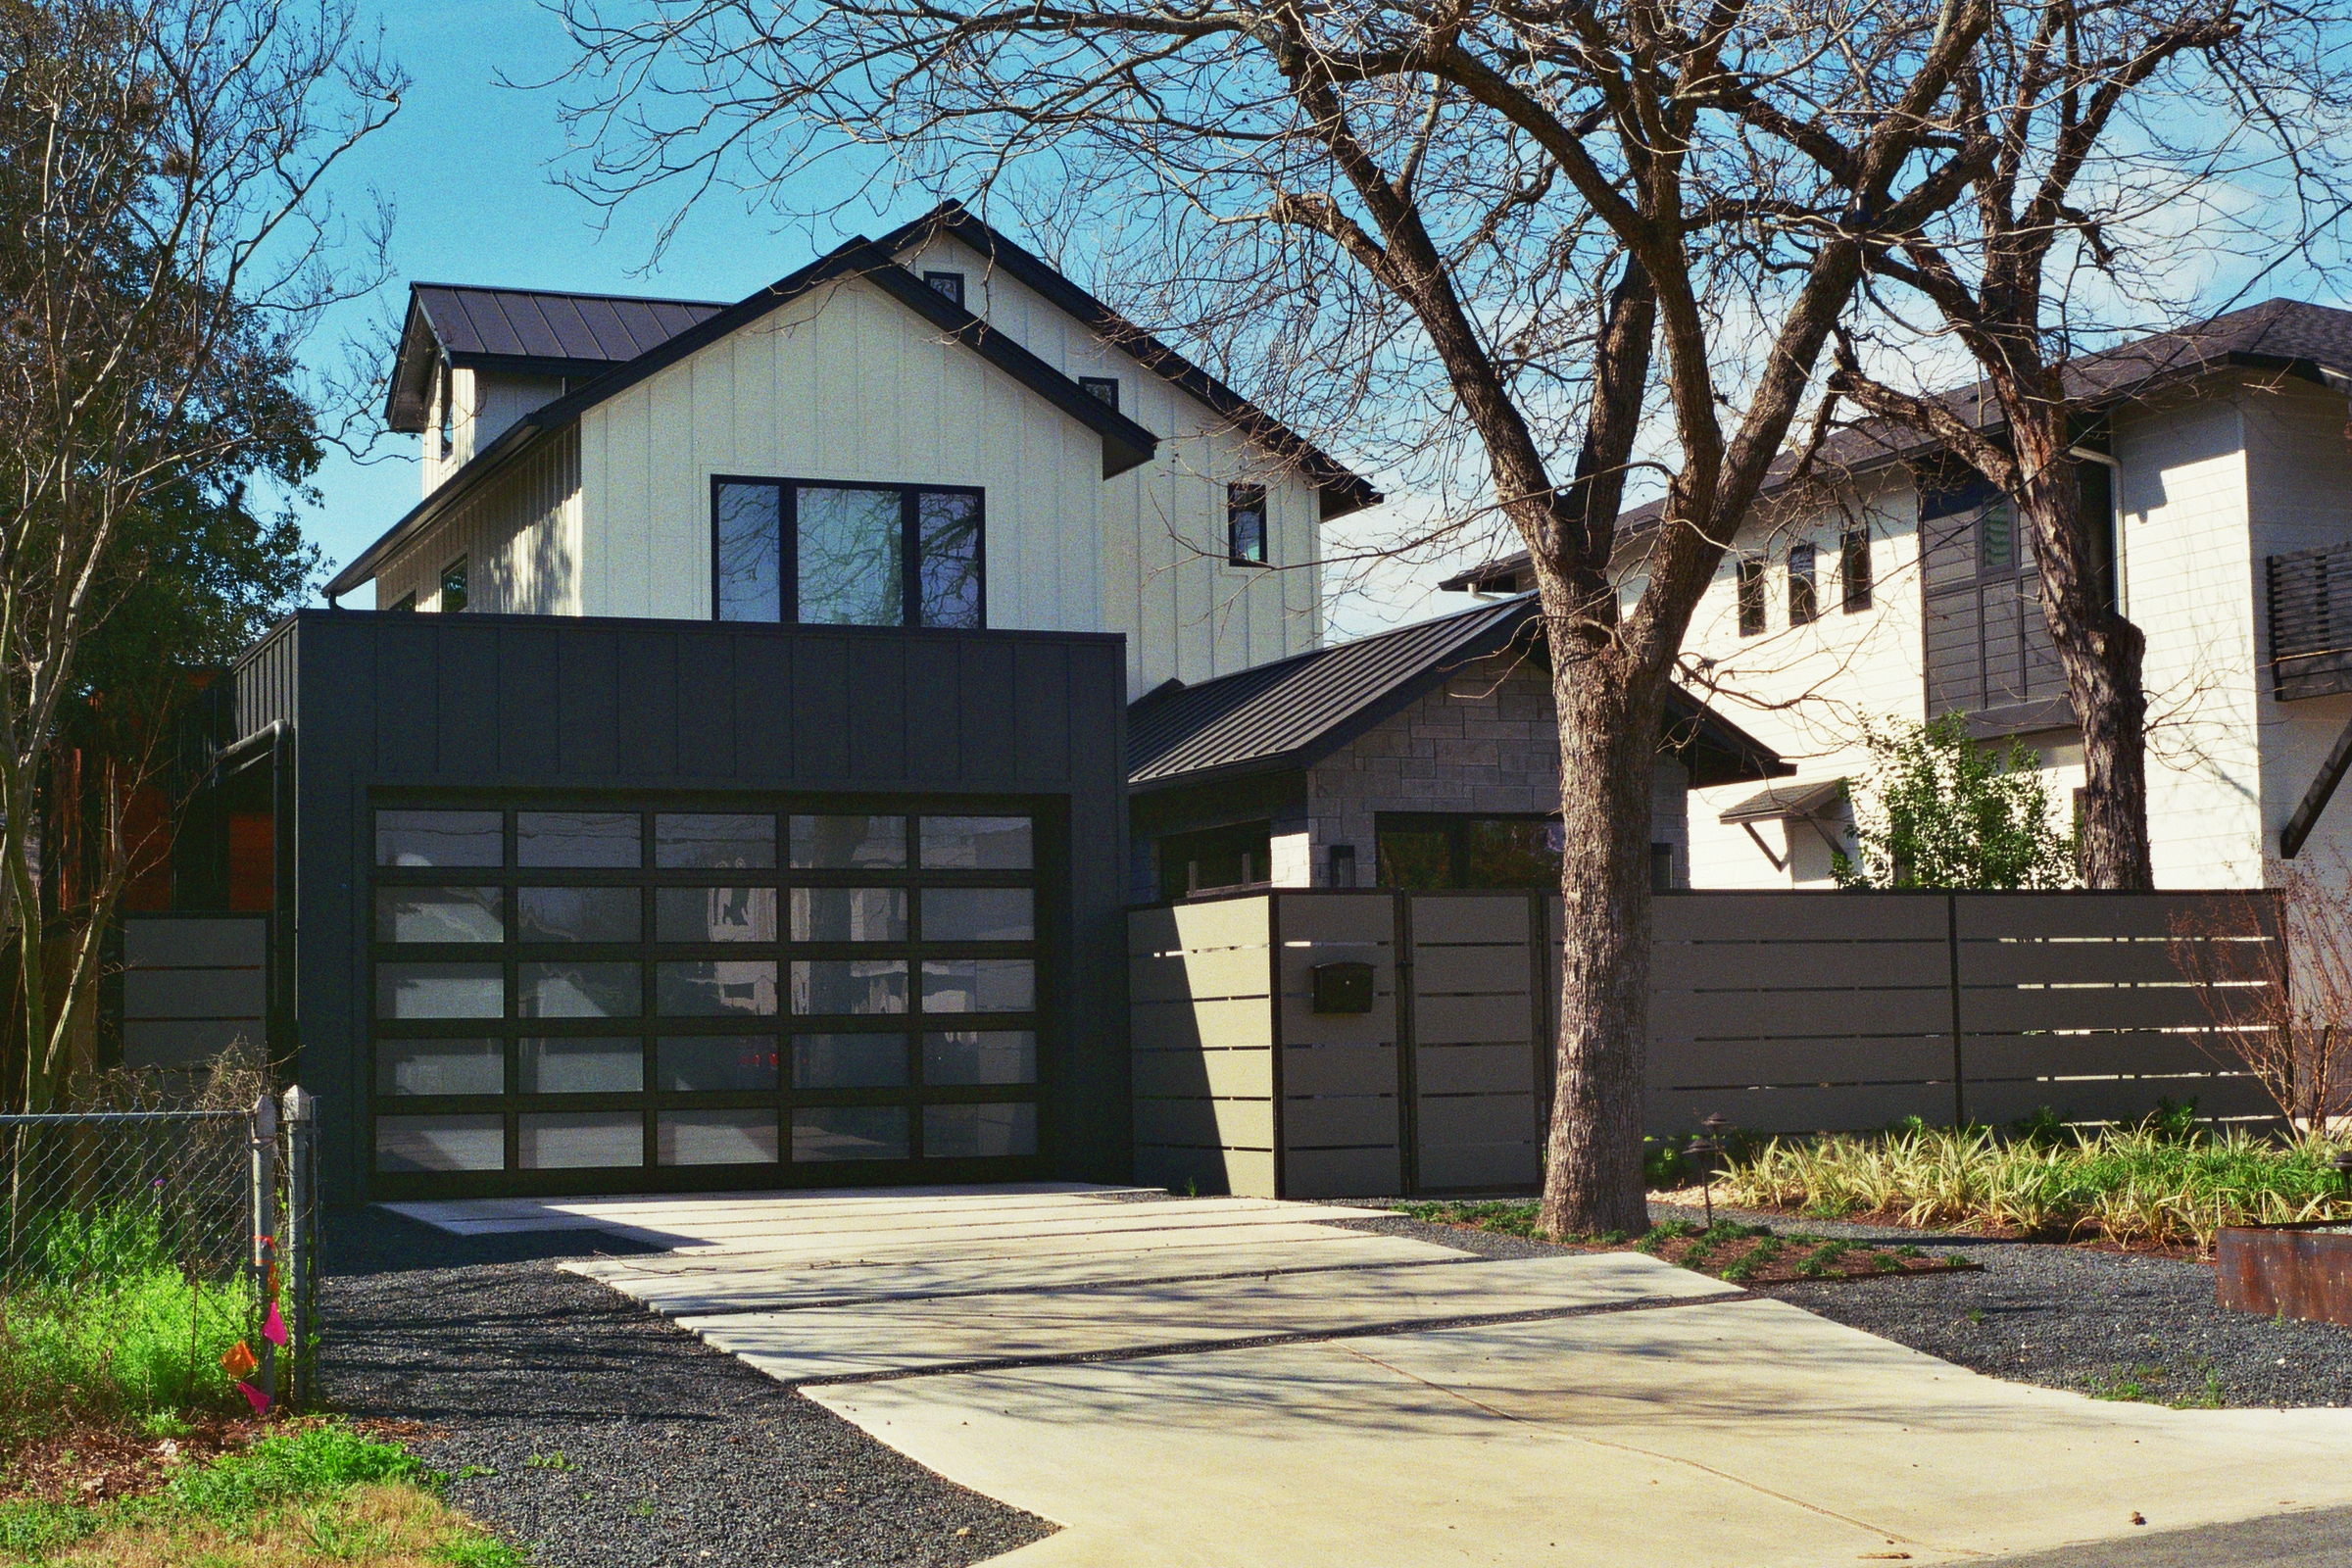 Modern homes stand beside older abodes in a hodgepodge typical of a gentrifying community.  Austin, TX  Kodak Ultra Max 400. Pentax K1000. Fletcher Berryman 2019.